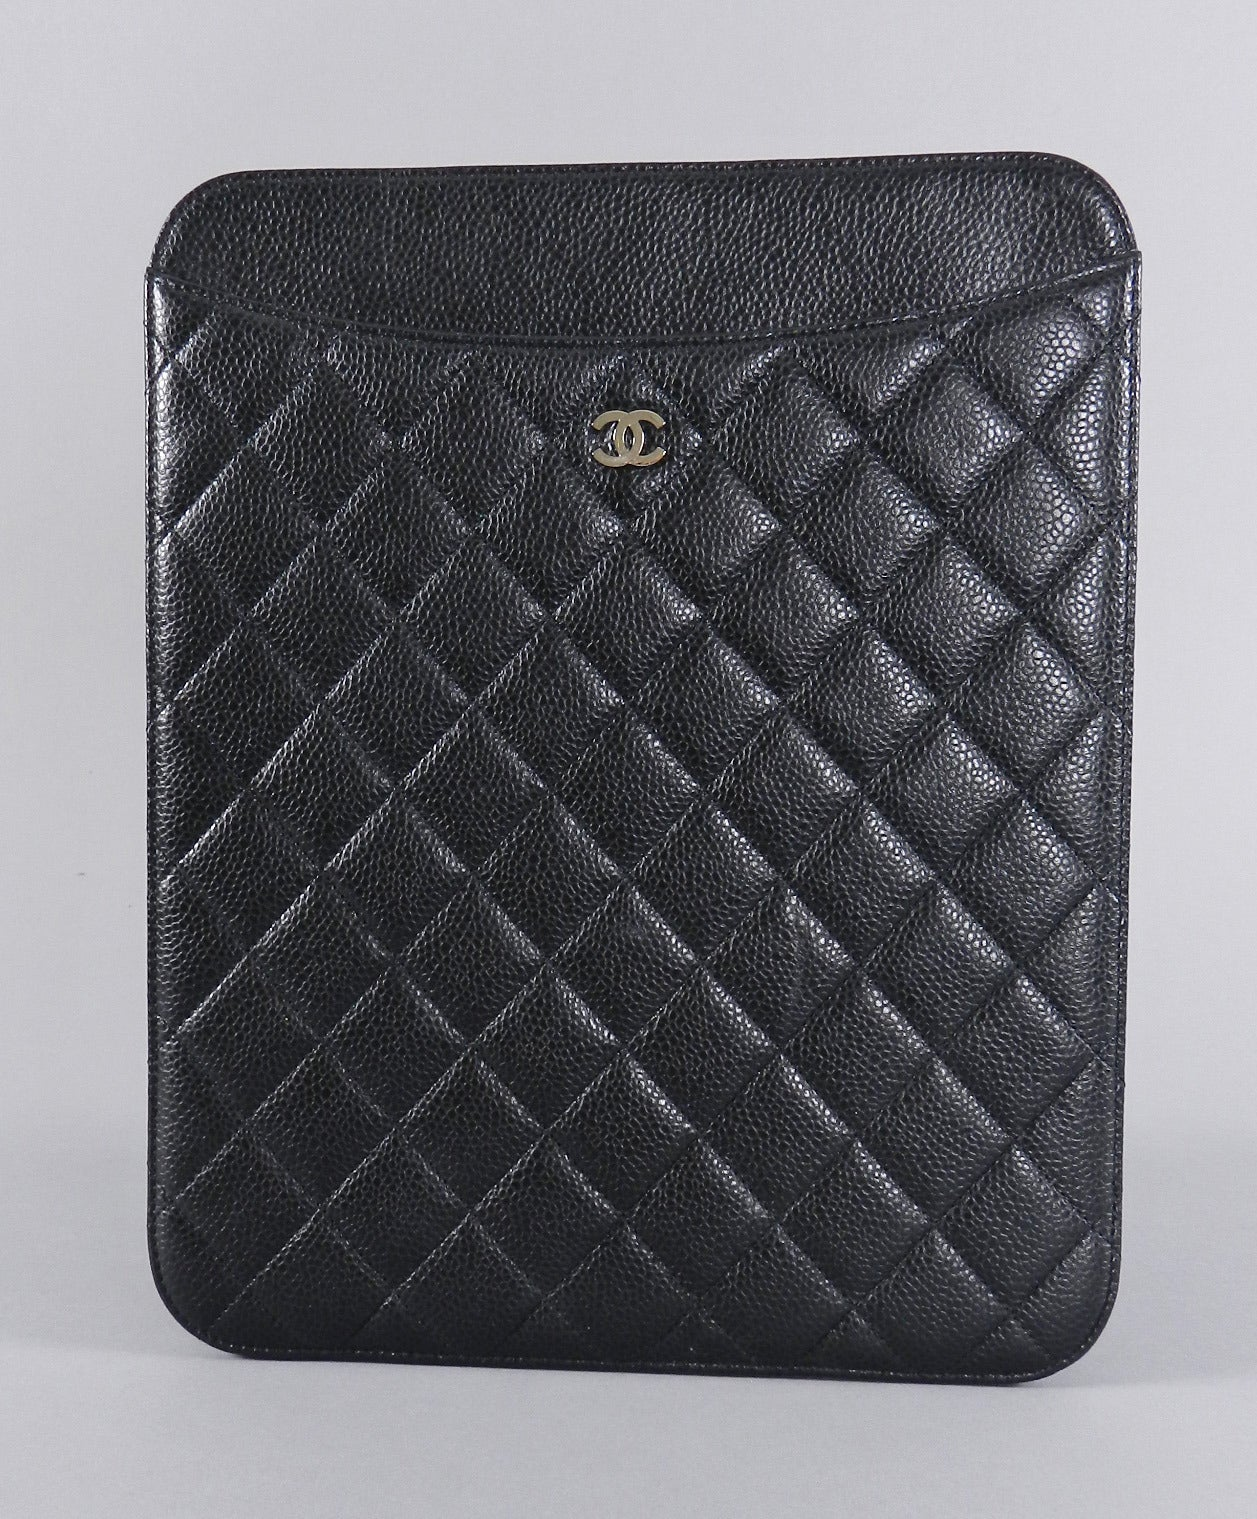 "Chanel black caviar ipad case with silvertone CC. Soft burgundy lining. Excellent clean previously owned condition with no flaws. Original card or duster is not present.  Date code 15 series for year 2012.  Measures 10.5 x 8.5"".